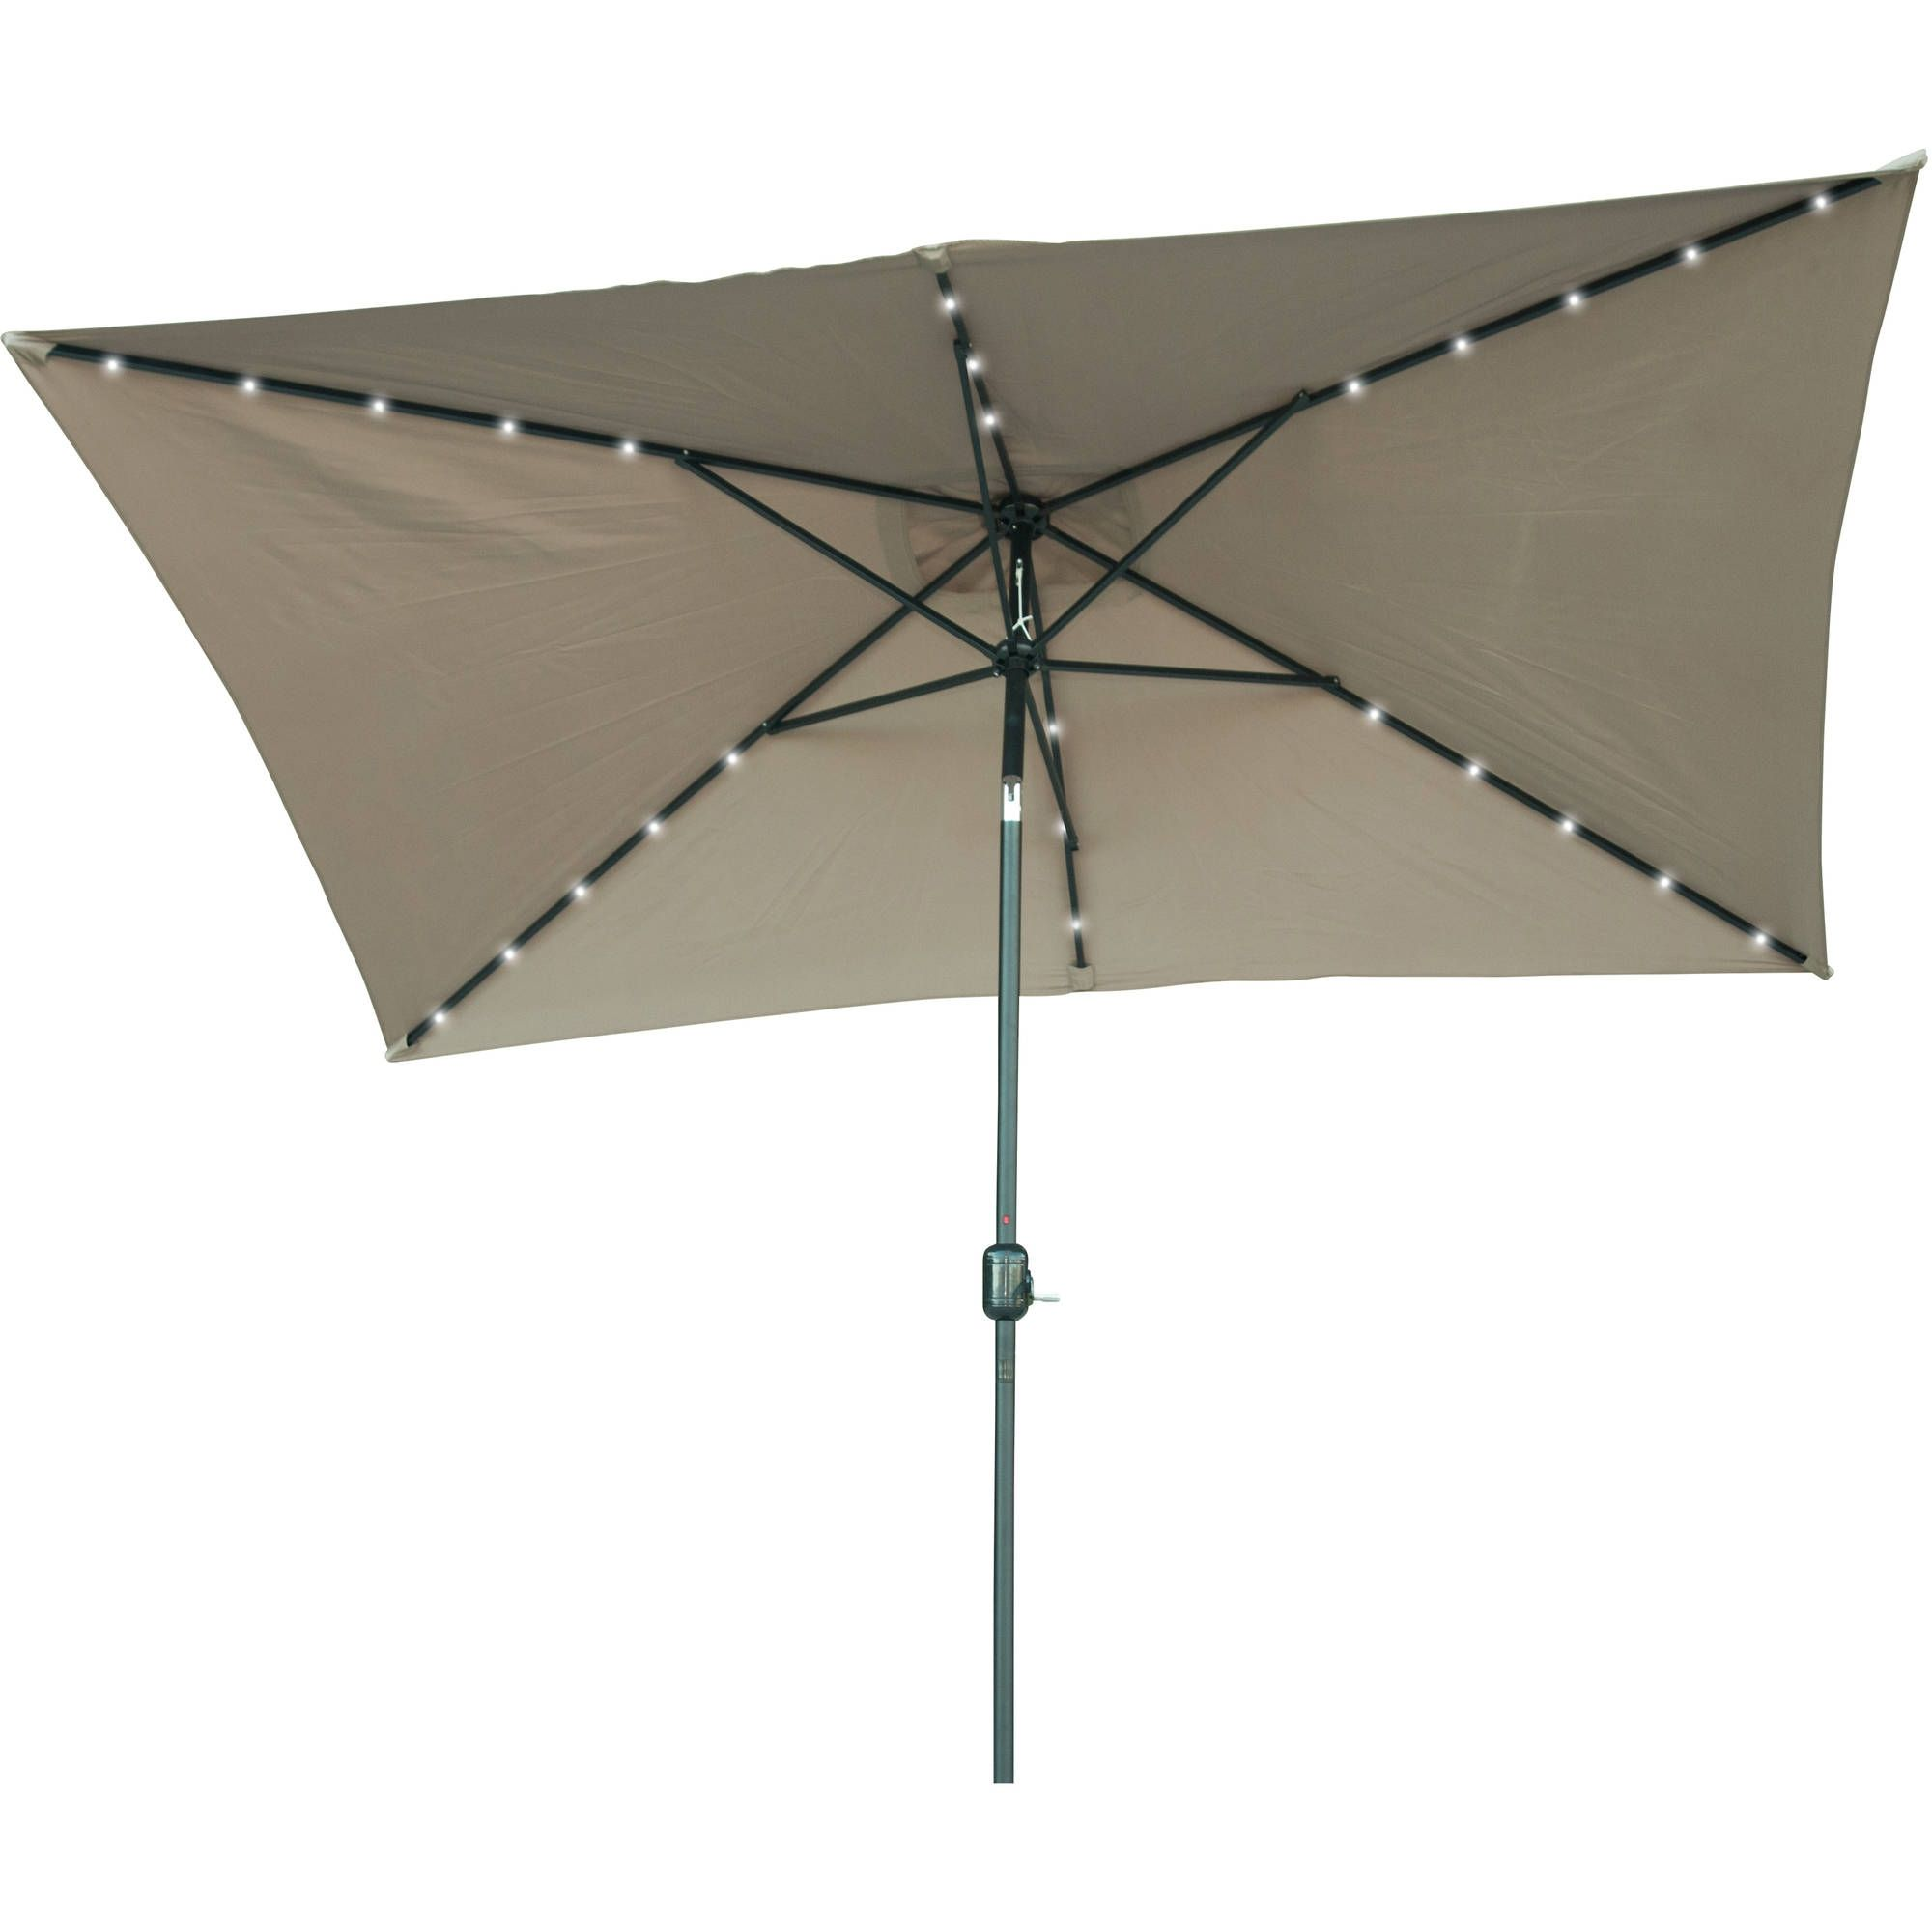 Rectangular Patio Umbrella With Solar Lights Pleasing Rectangular Patio Umbrella With Solar Lights  Patio Decor 2018